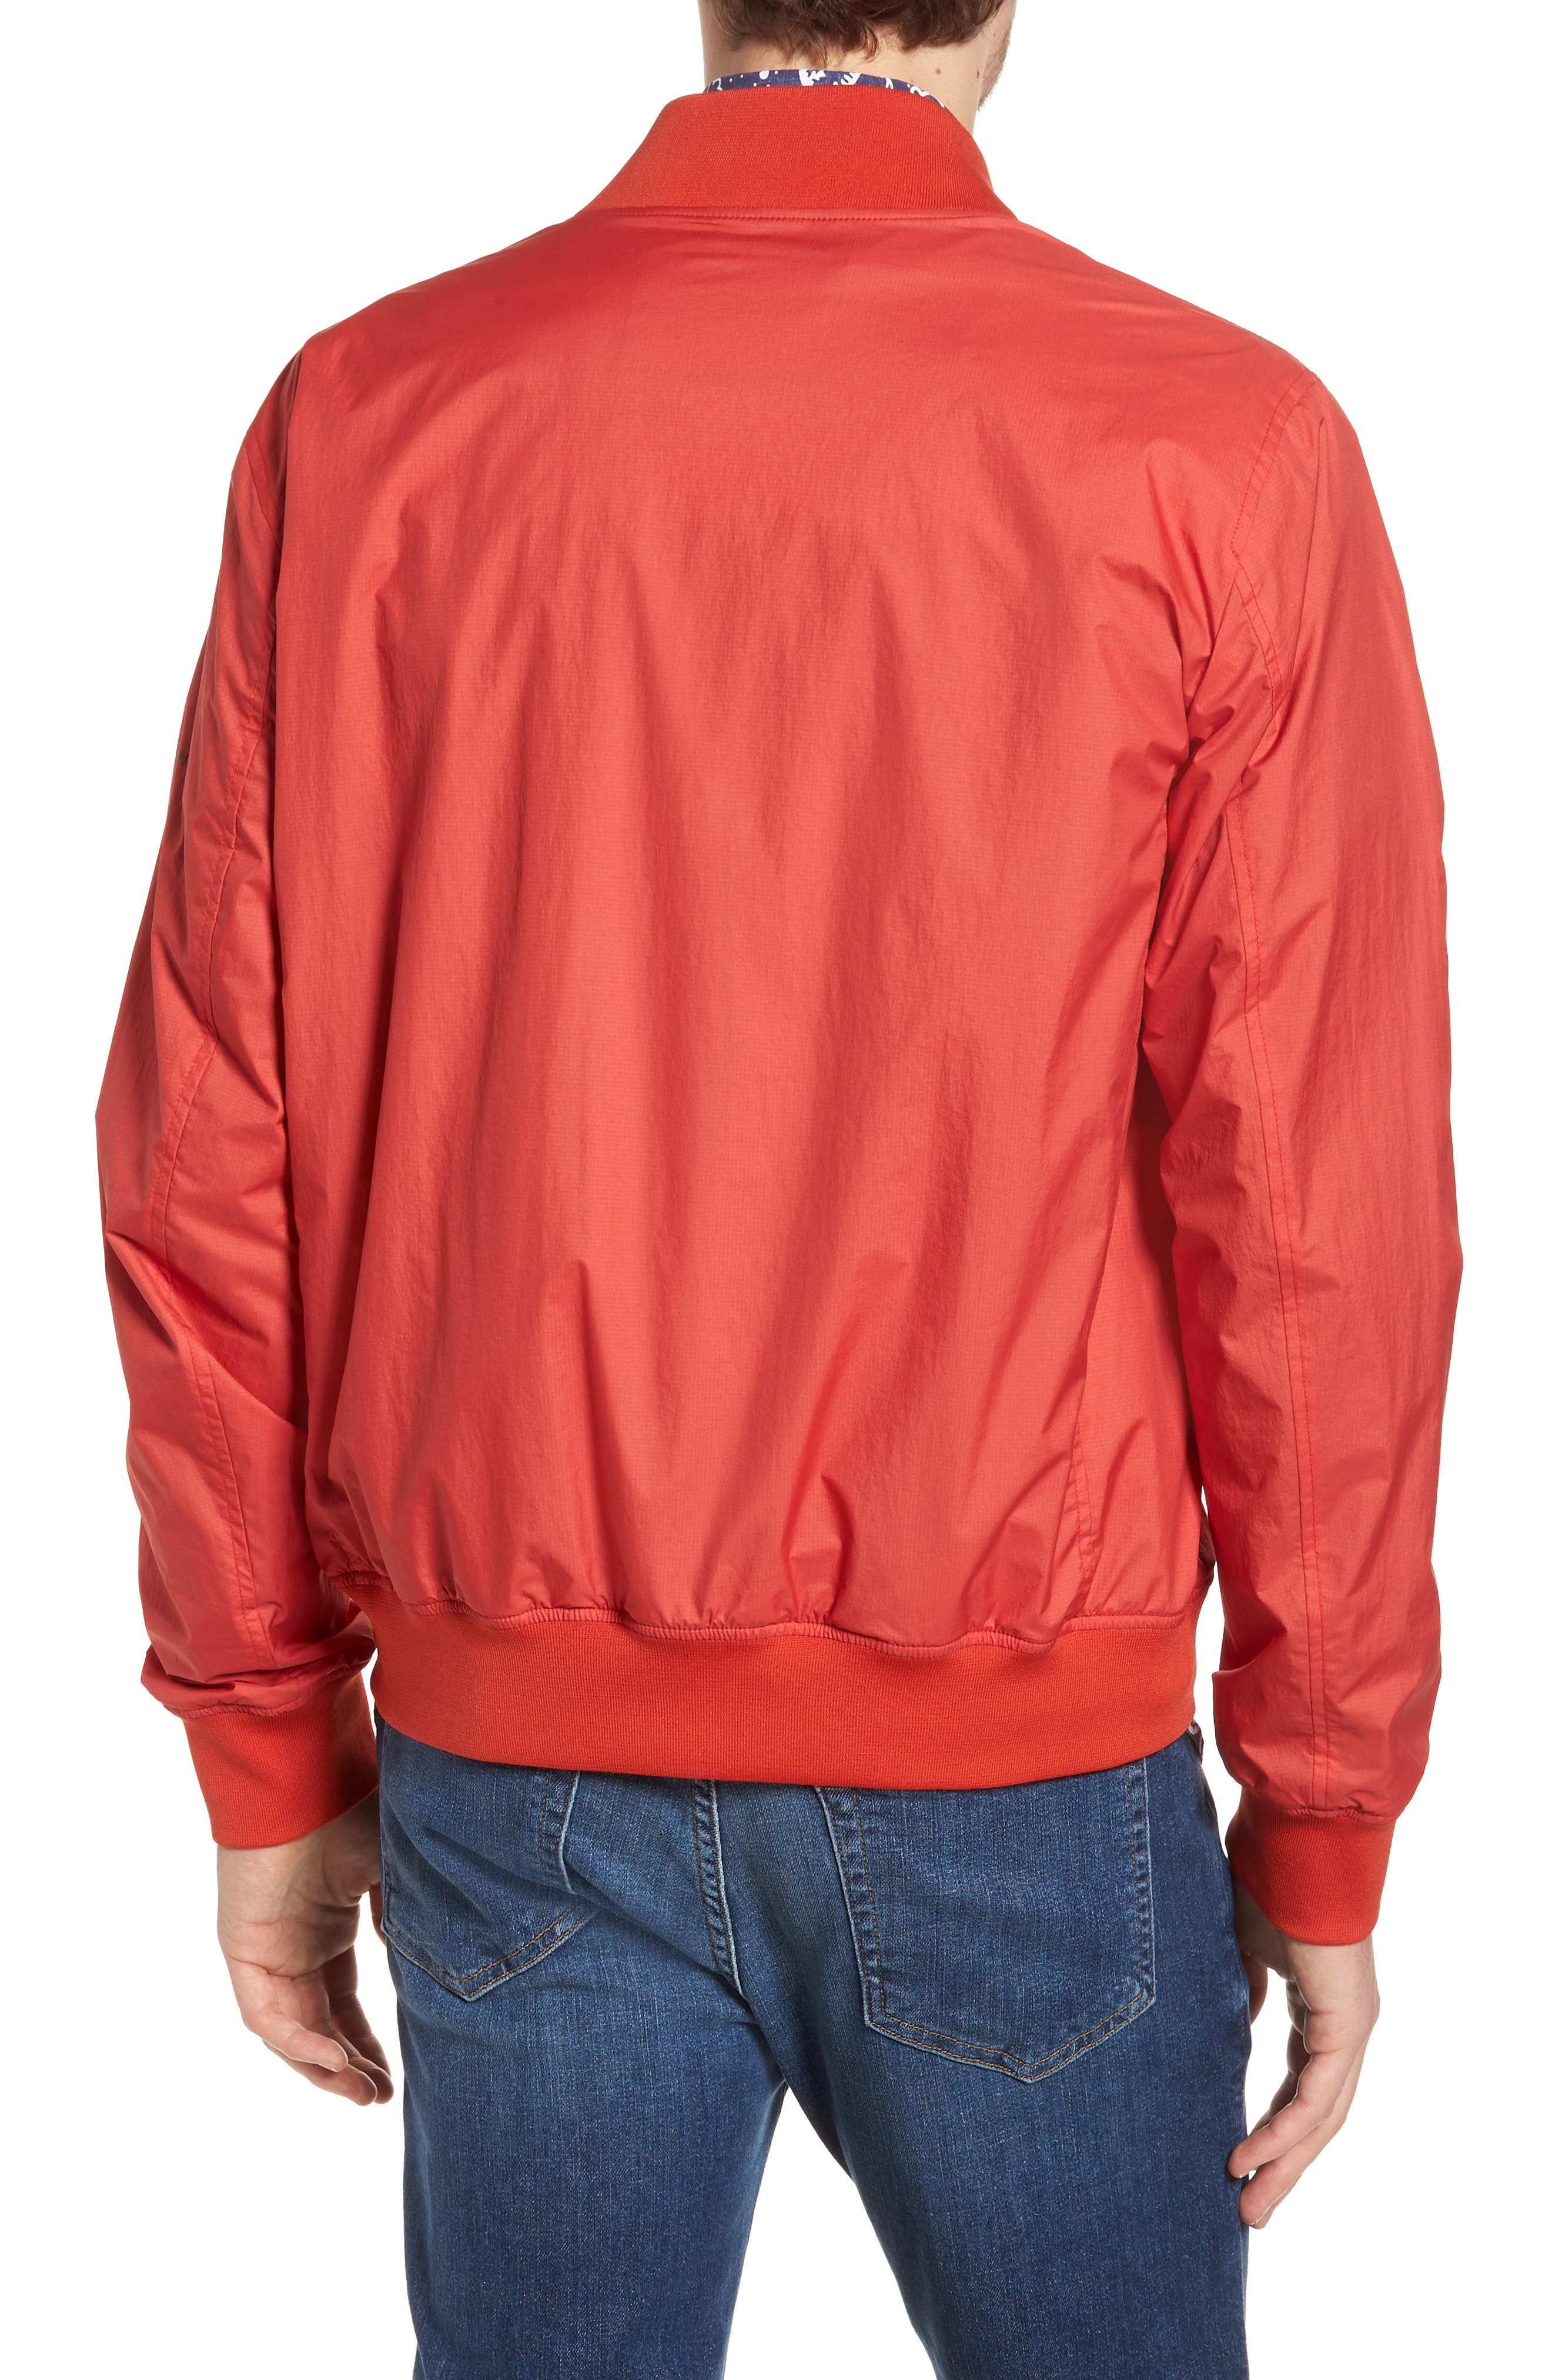 Wallaby Bomber Jacket,                             Alternate thumbnail 2, color,                             Aurora Red